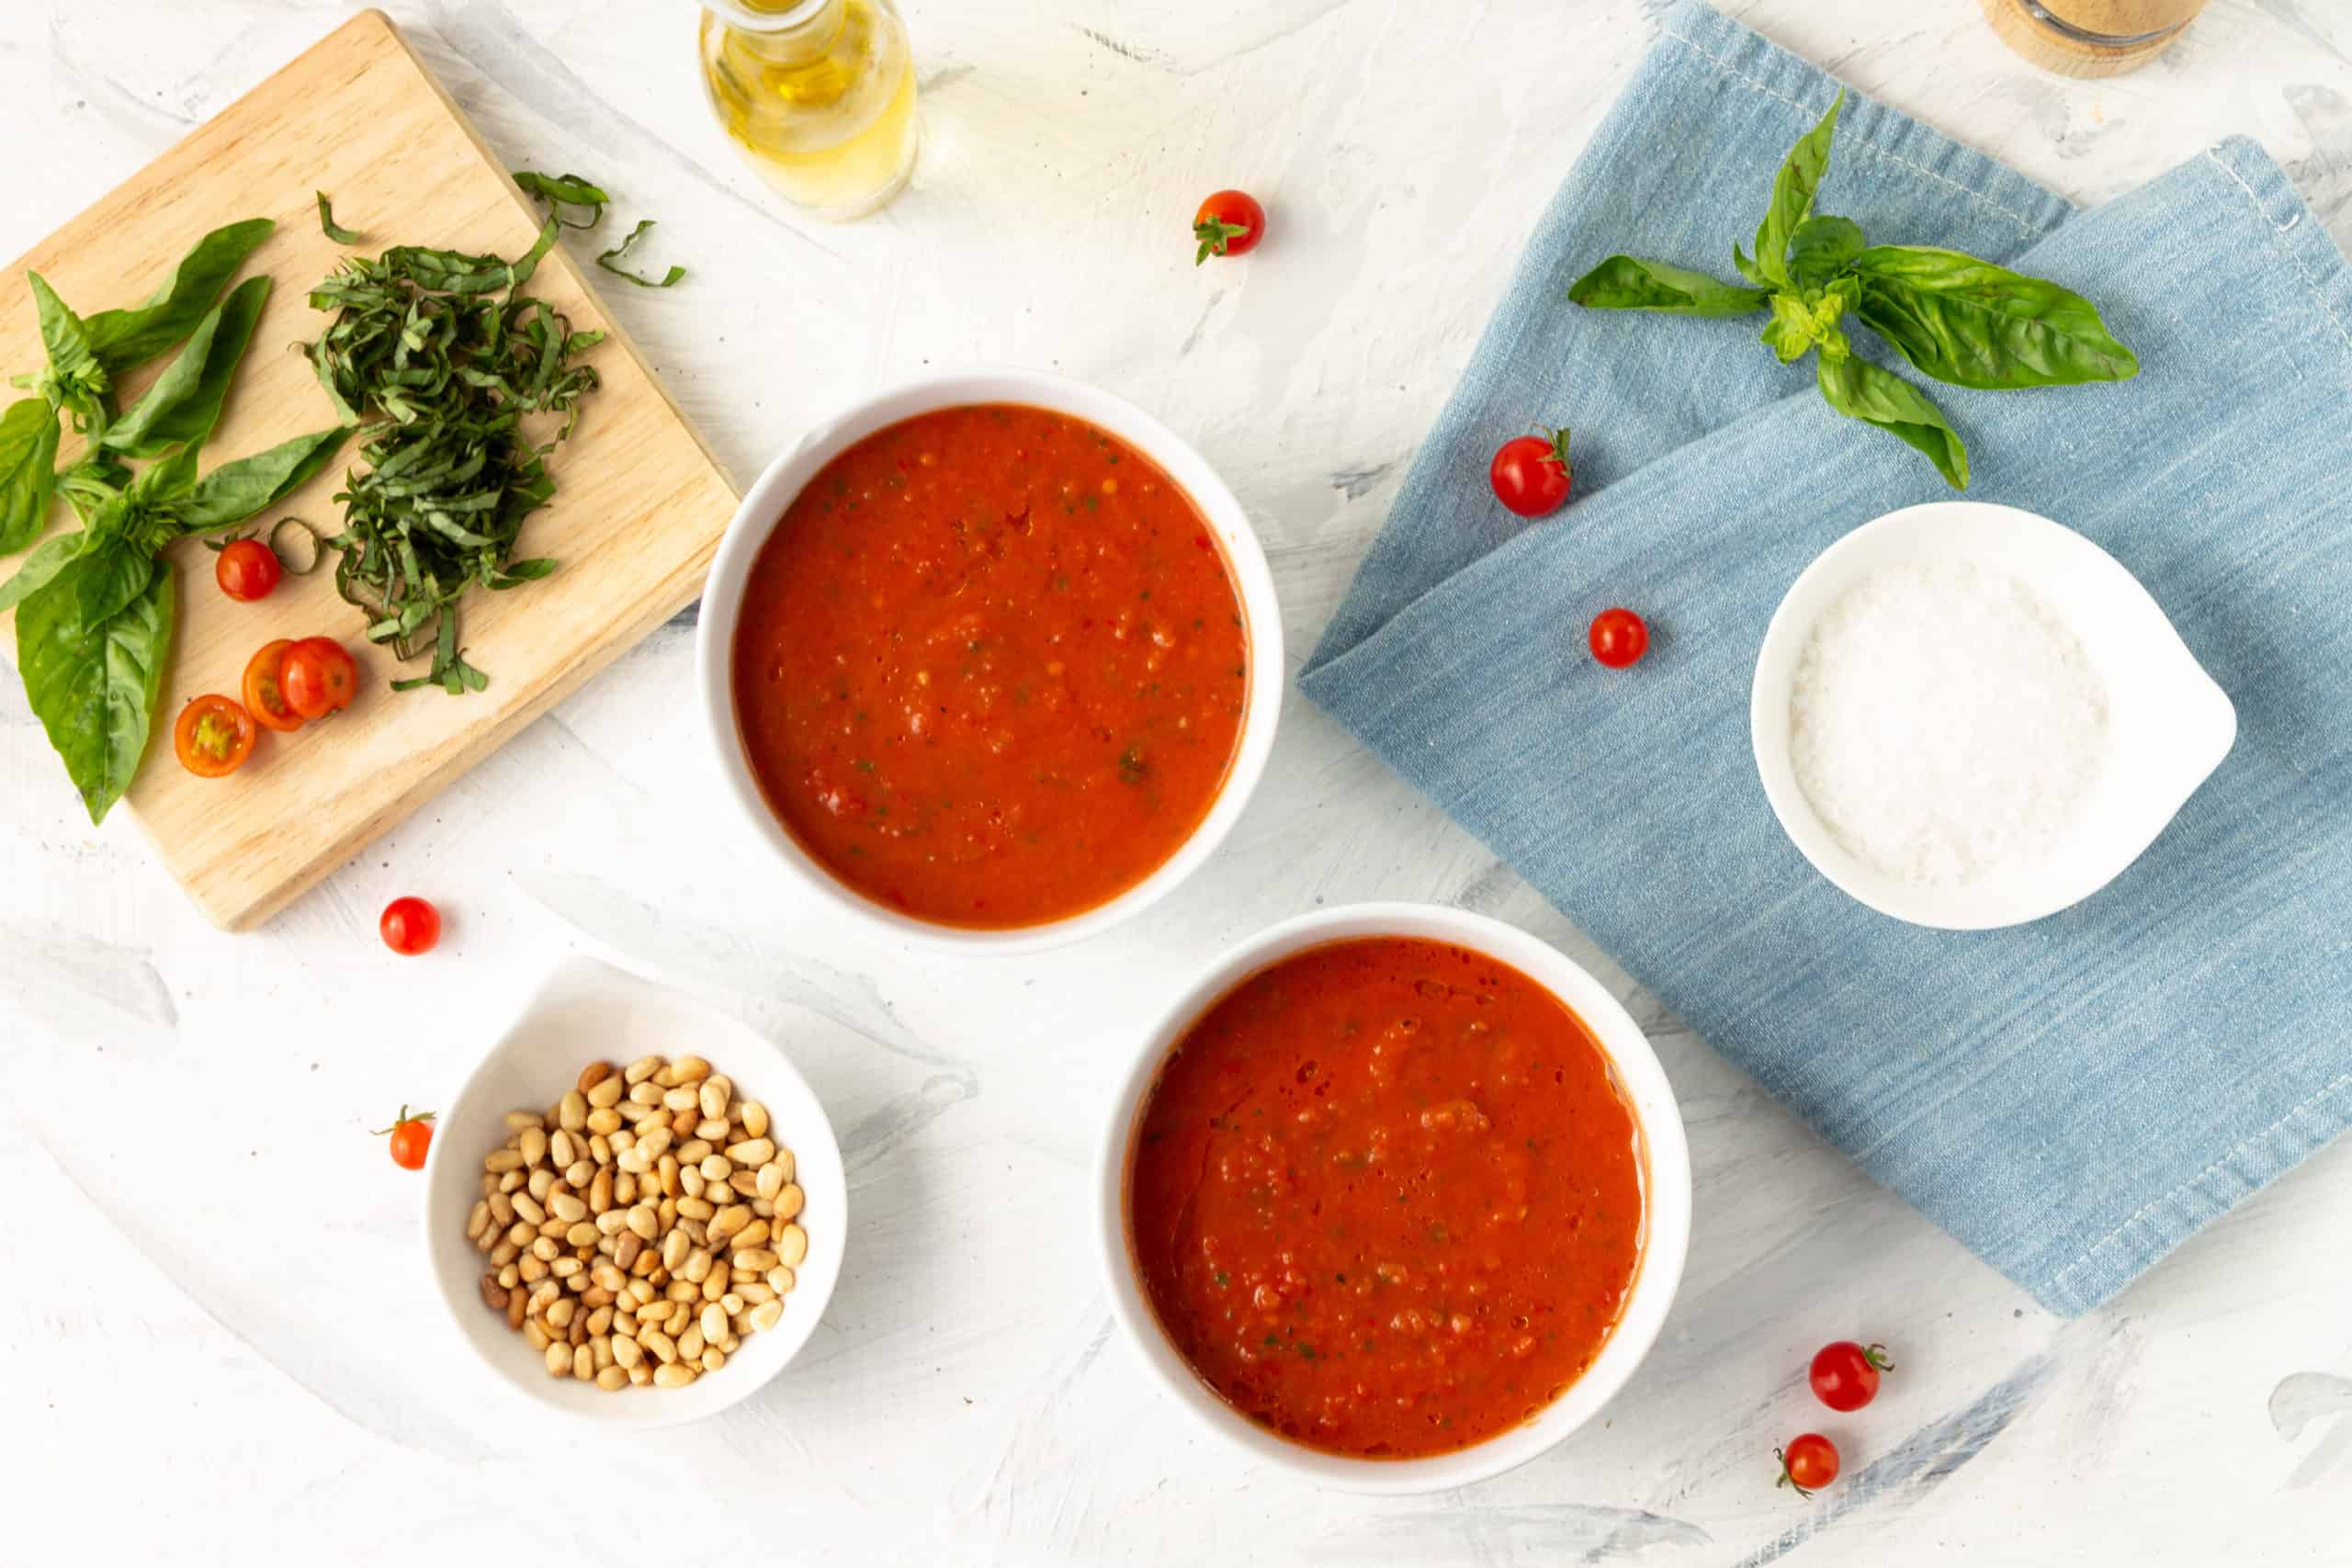 Chilled Tomato Soup with Chipotle